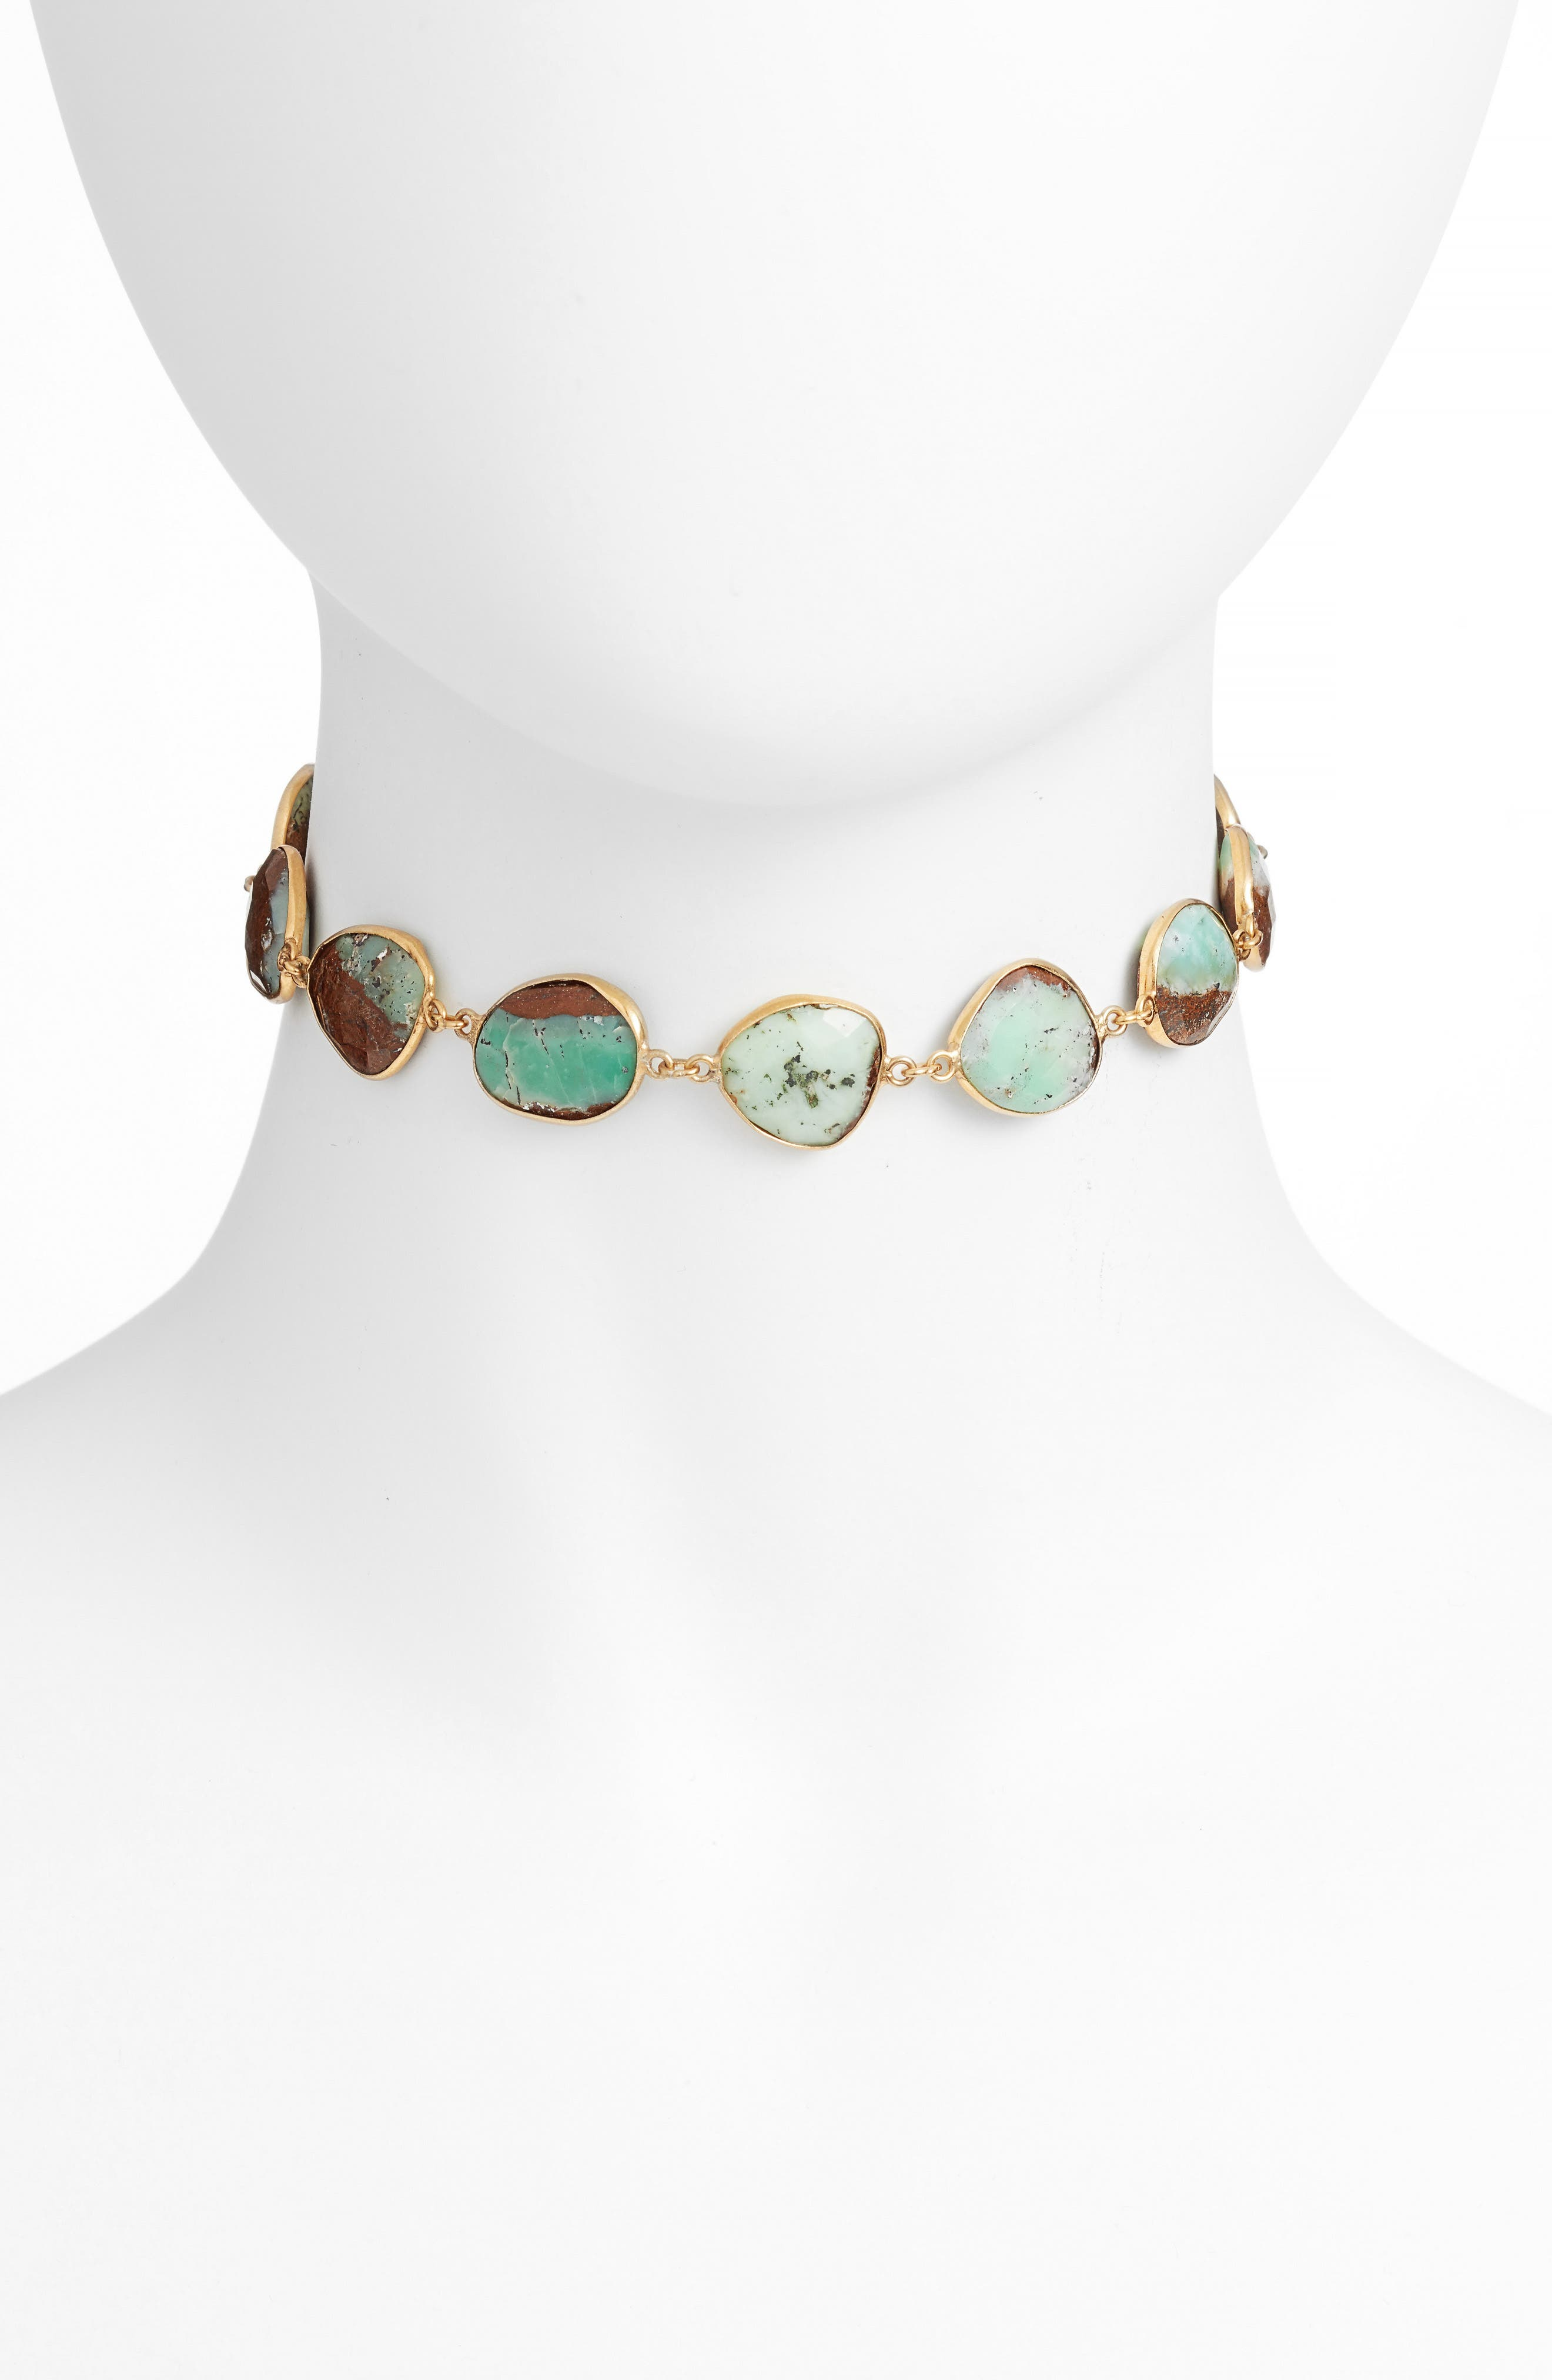 ELA RAE Sadie Collar Necklace